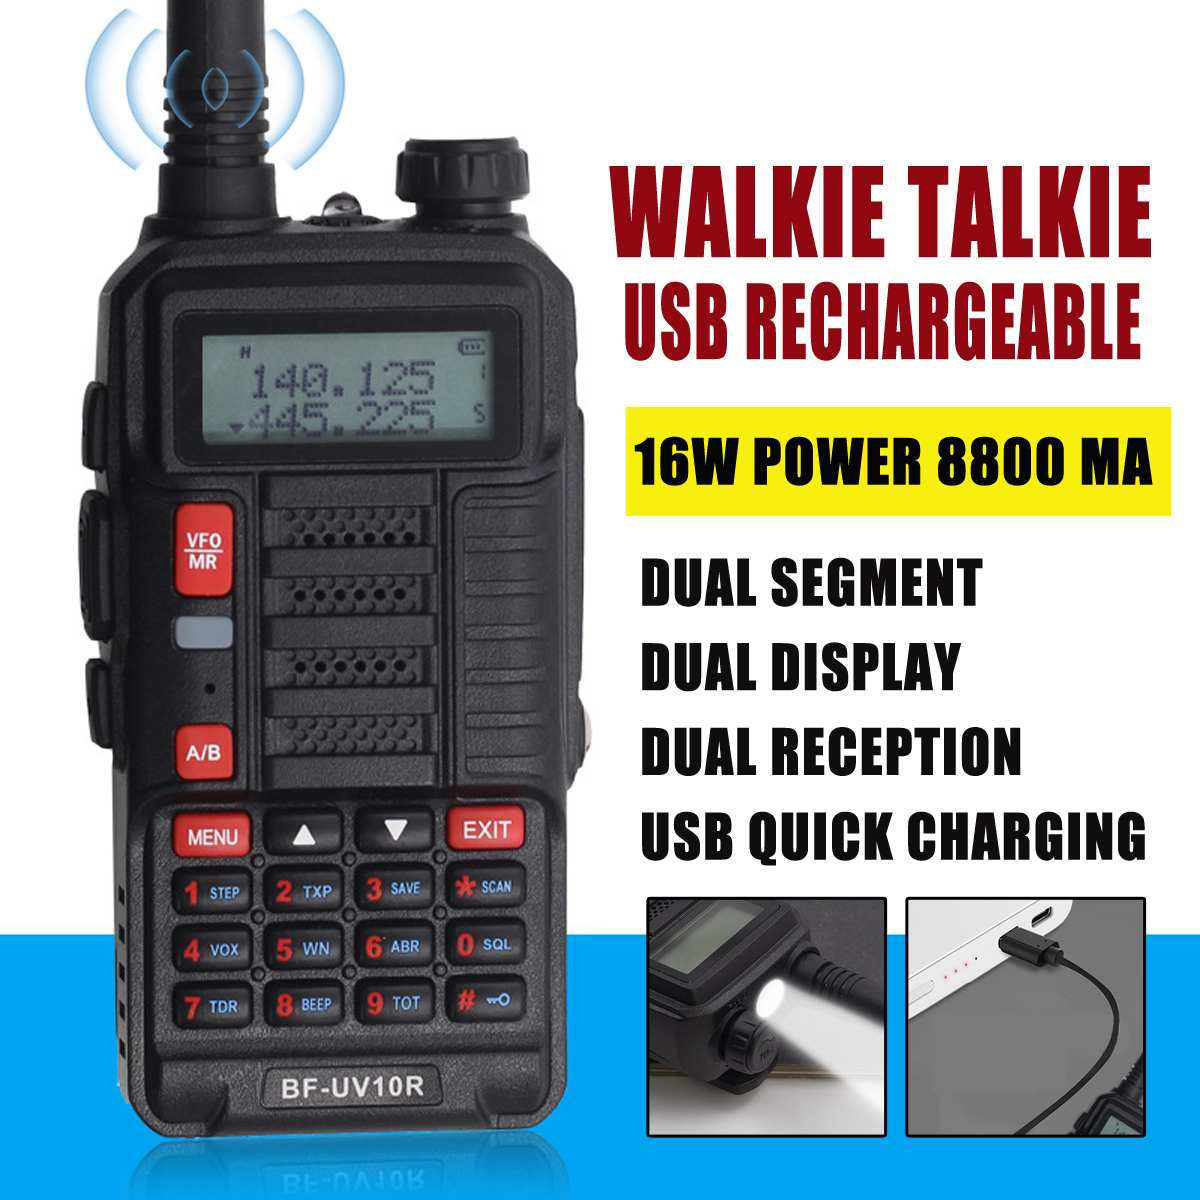 BF UV10R Walkie Talkie Ergonomic With Earphone Usb Charging Cable 16W 8800mah EU Plug Flashlight LED Display Dust-proof Design